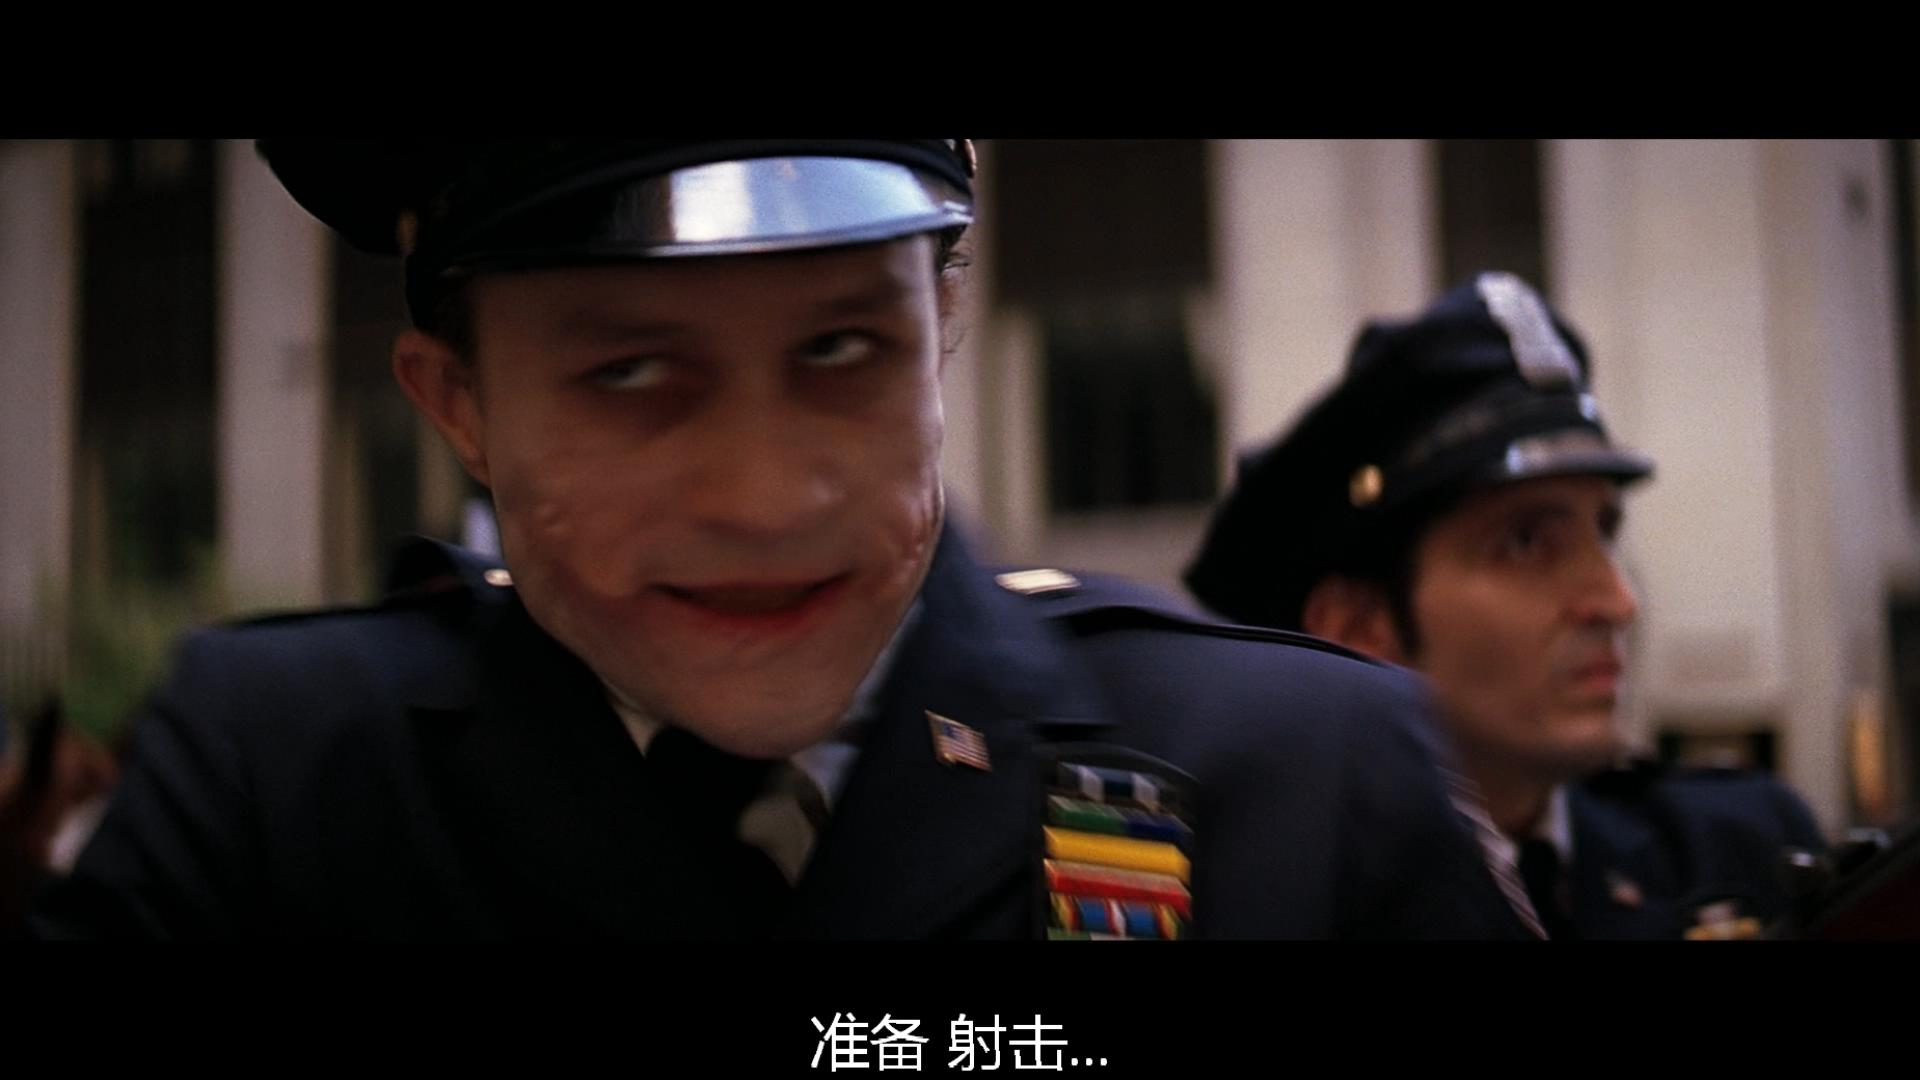 [蝙蝠侠前传2:黑暗骑士].The.Dark.Knight.2008.BDRip.1080p.x264.DTS.Audio-CHD.D2_2.jpg